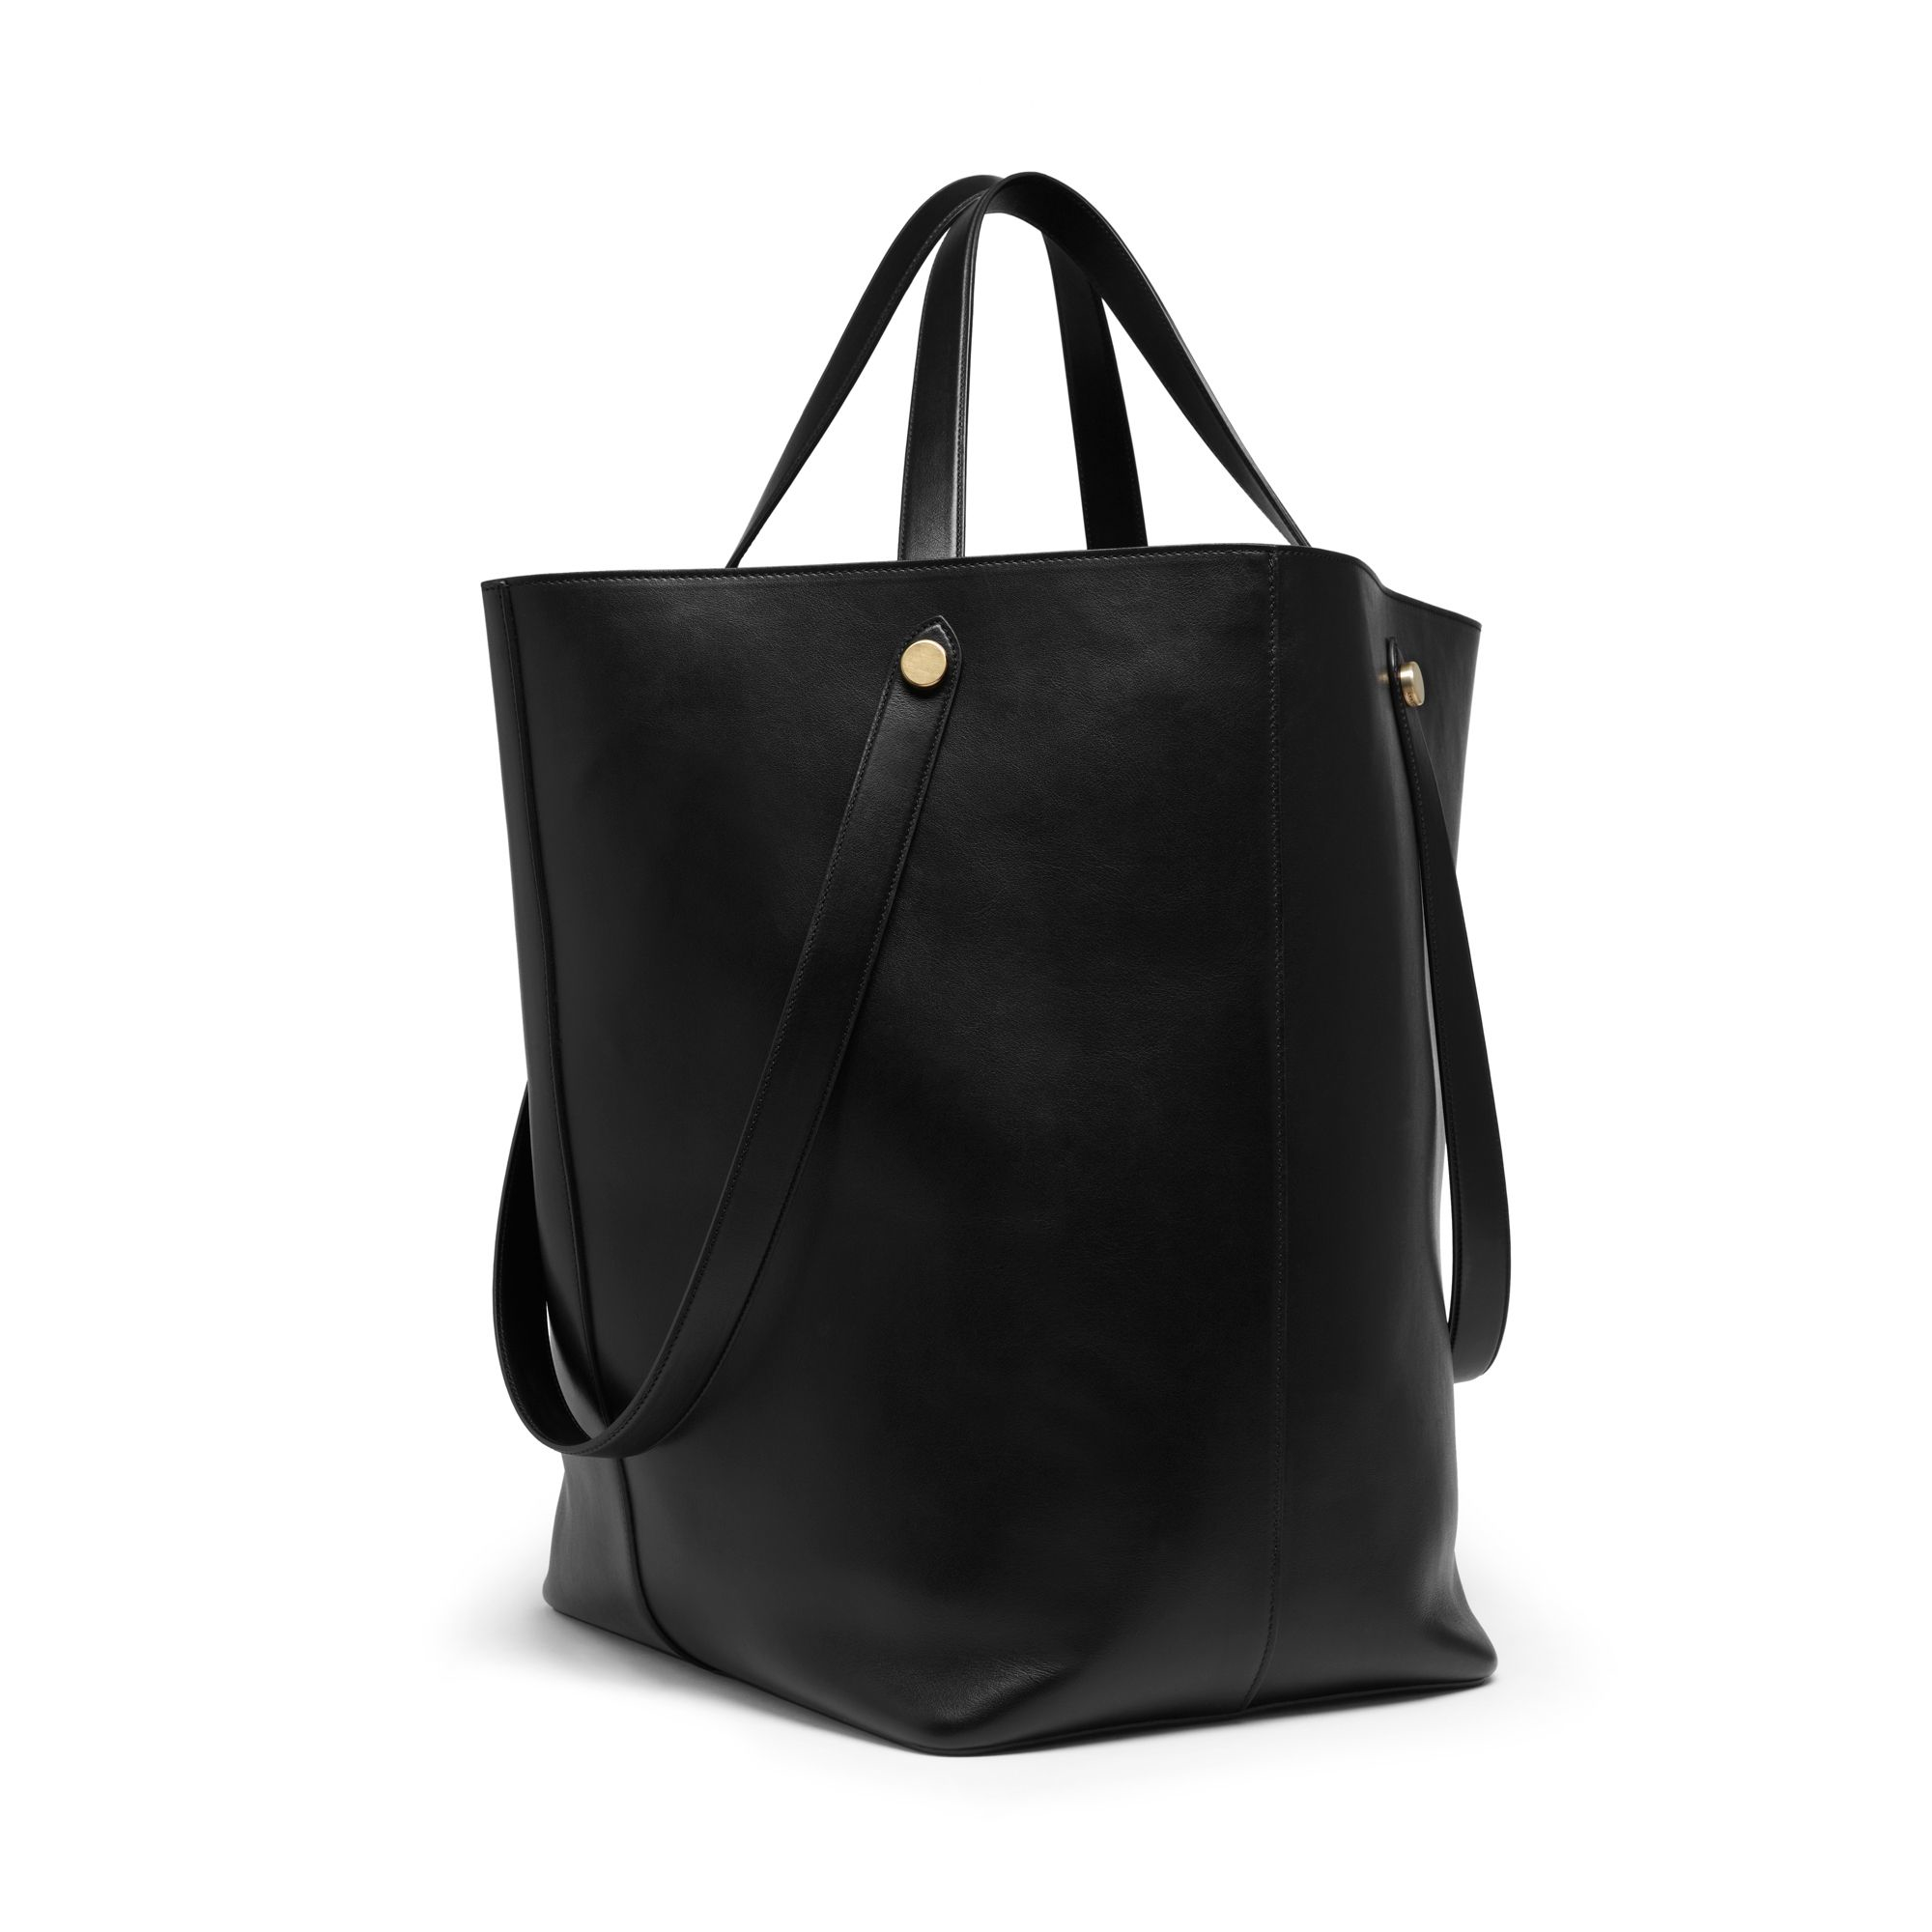 d25039f453 Lyst - Mulberry Oversized Kite Leather Tote in Black